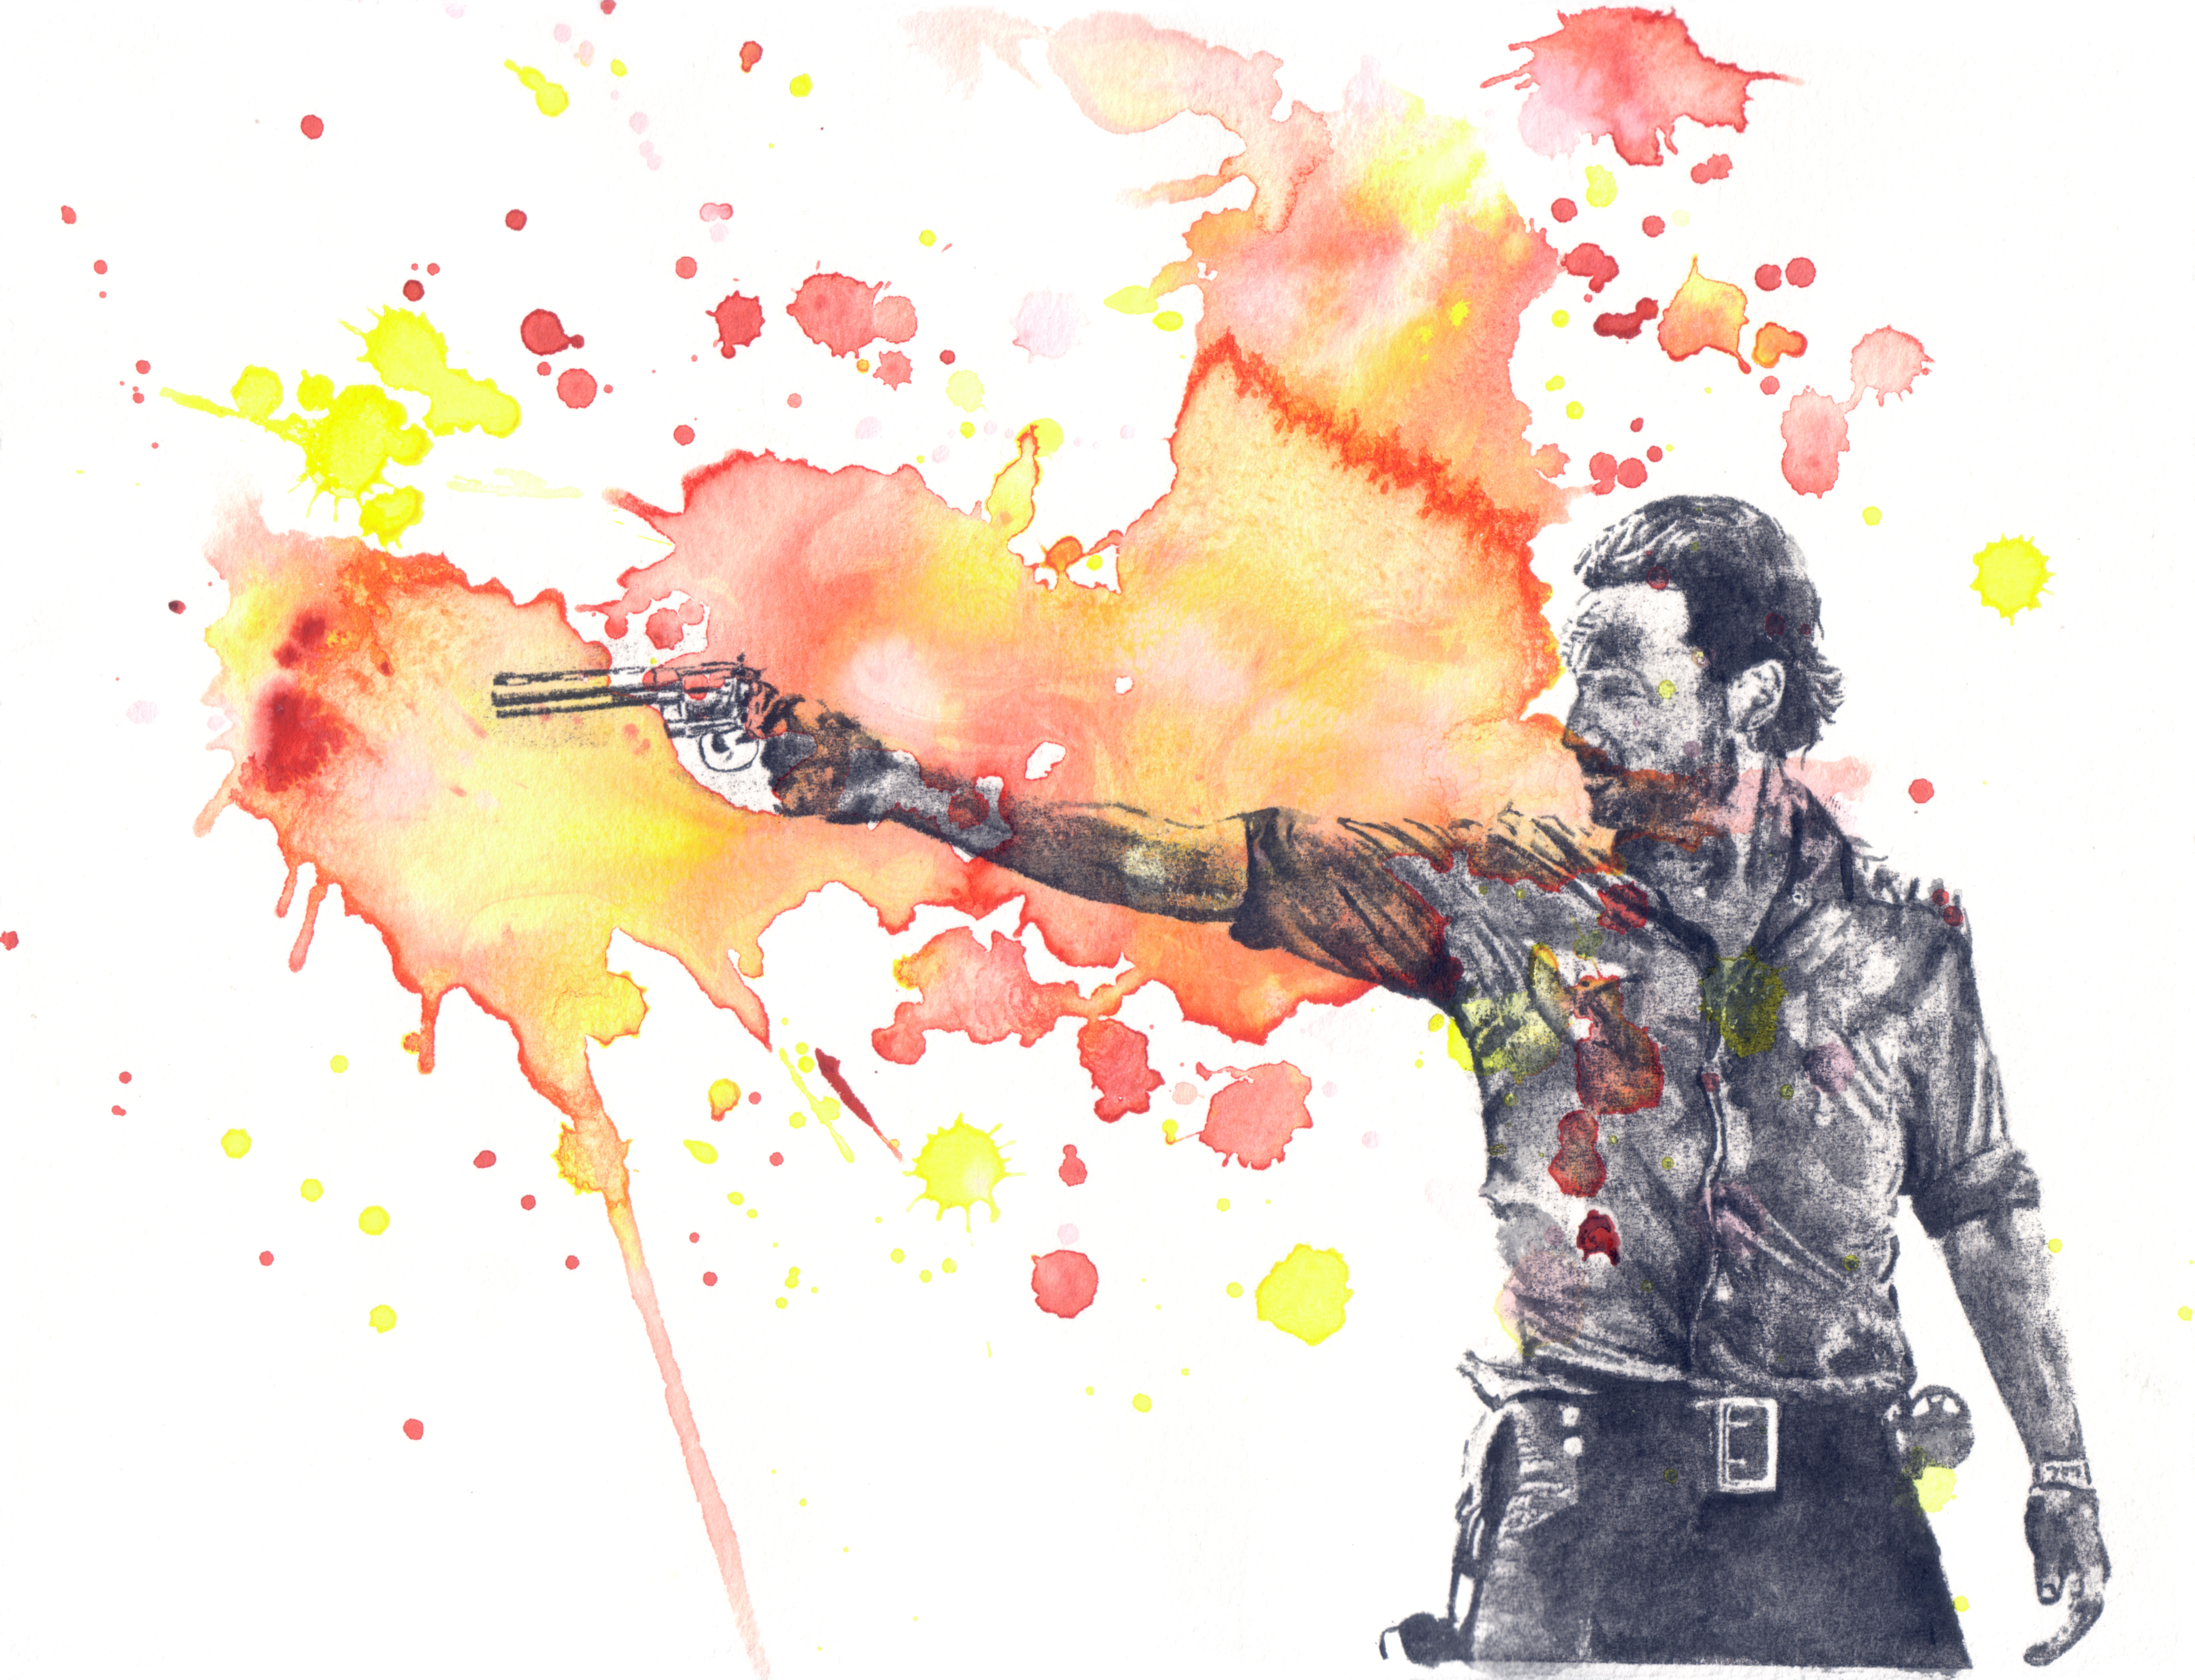 6667x5104 Walking Dead Art Watercolor Painting Rick Grimes Isabelle